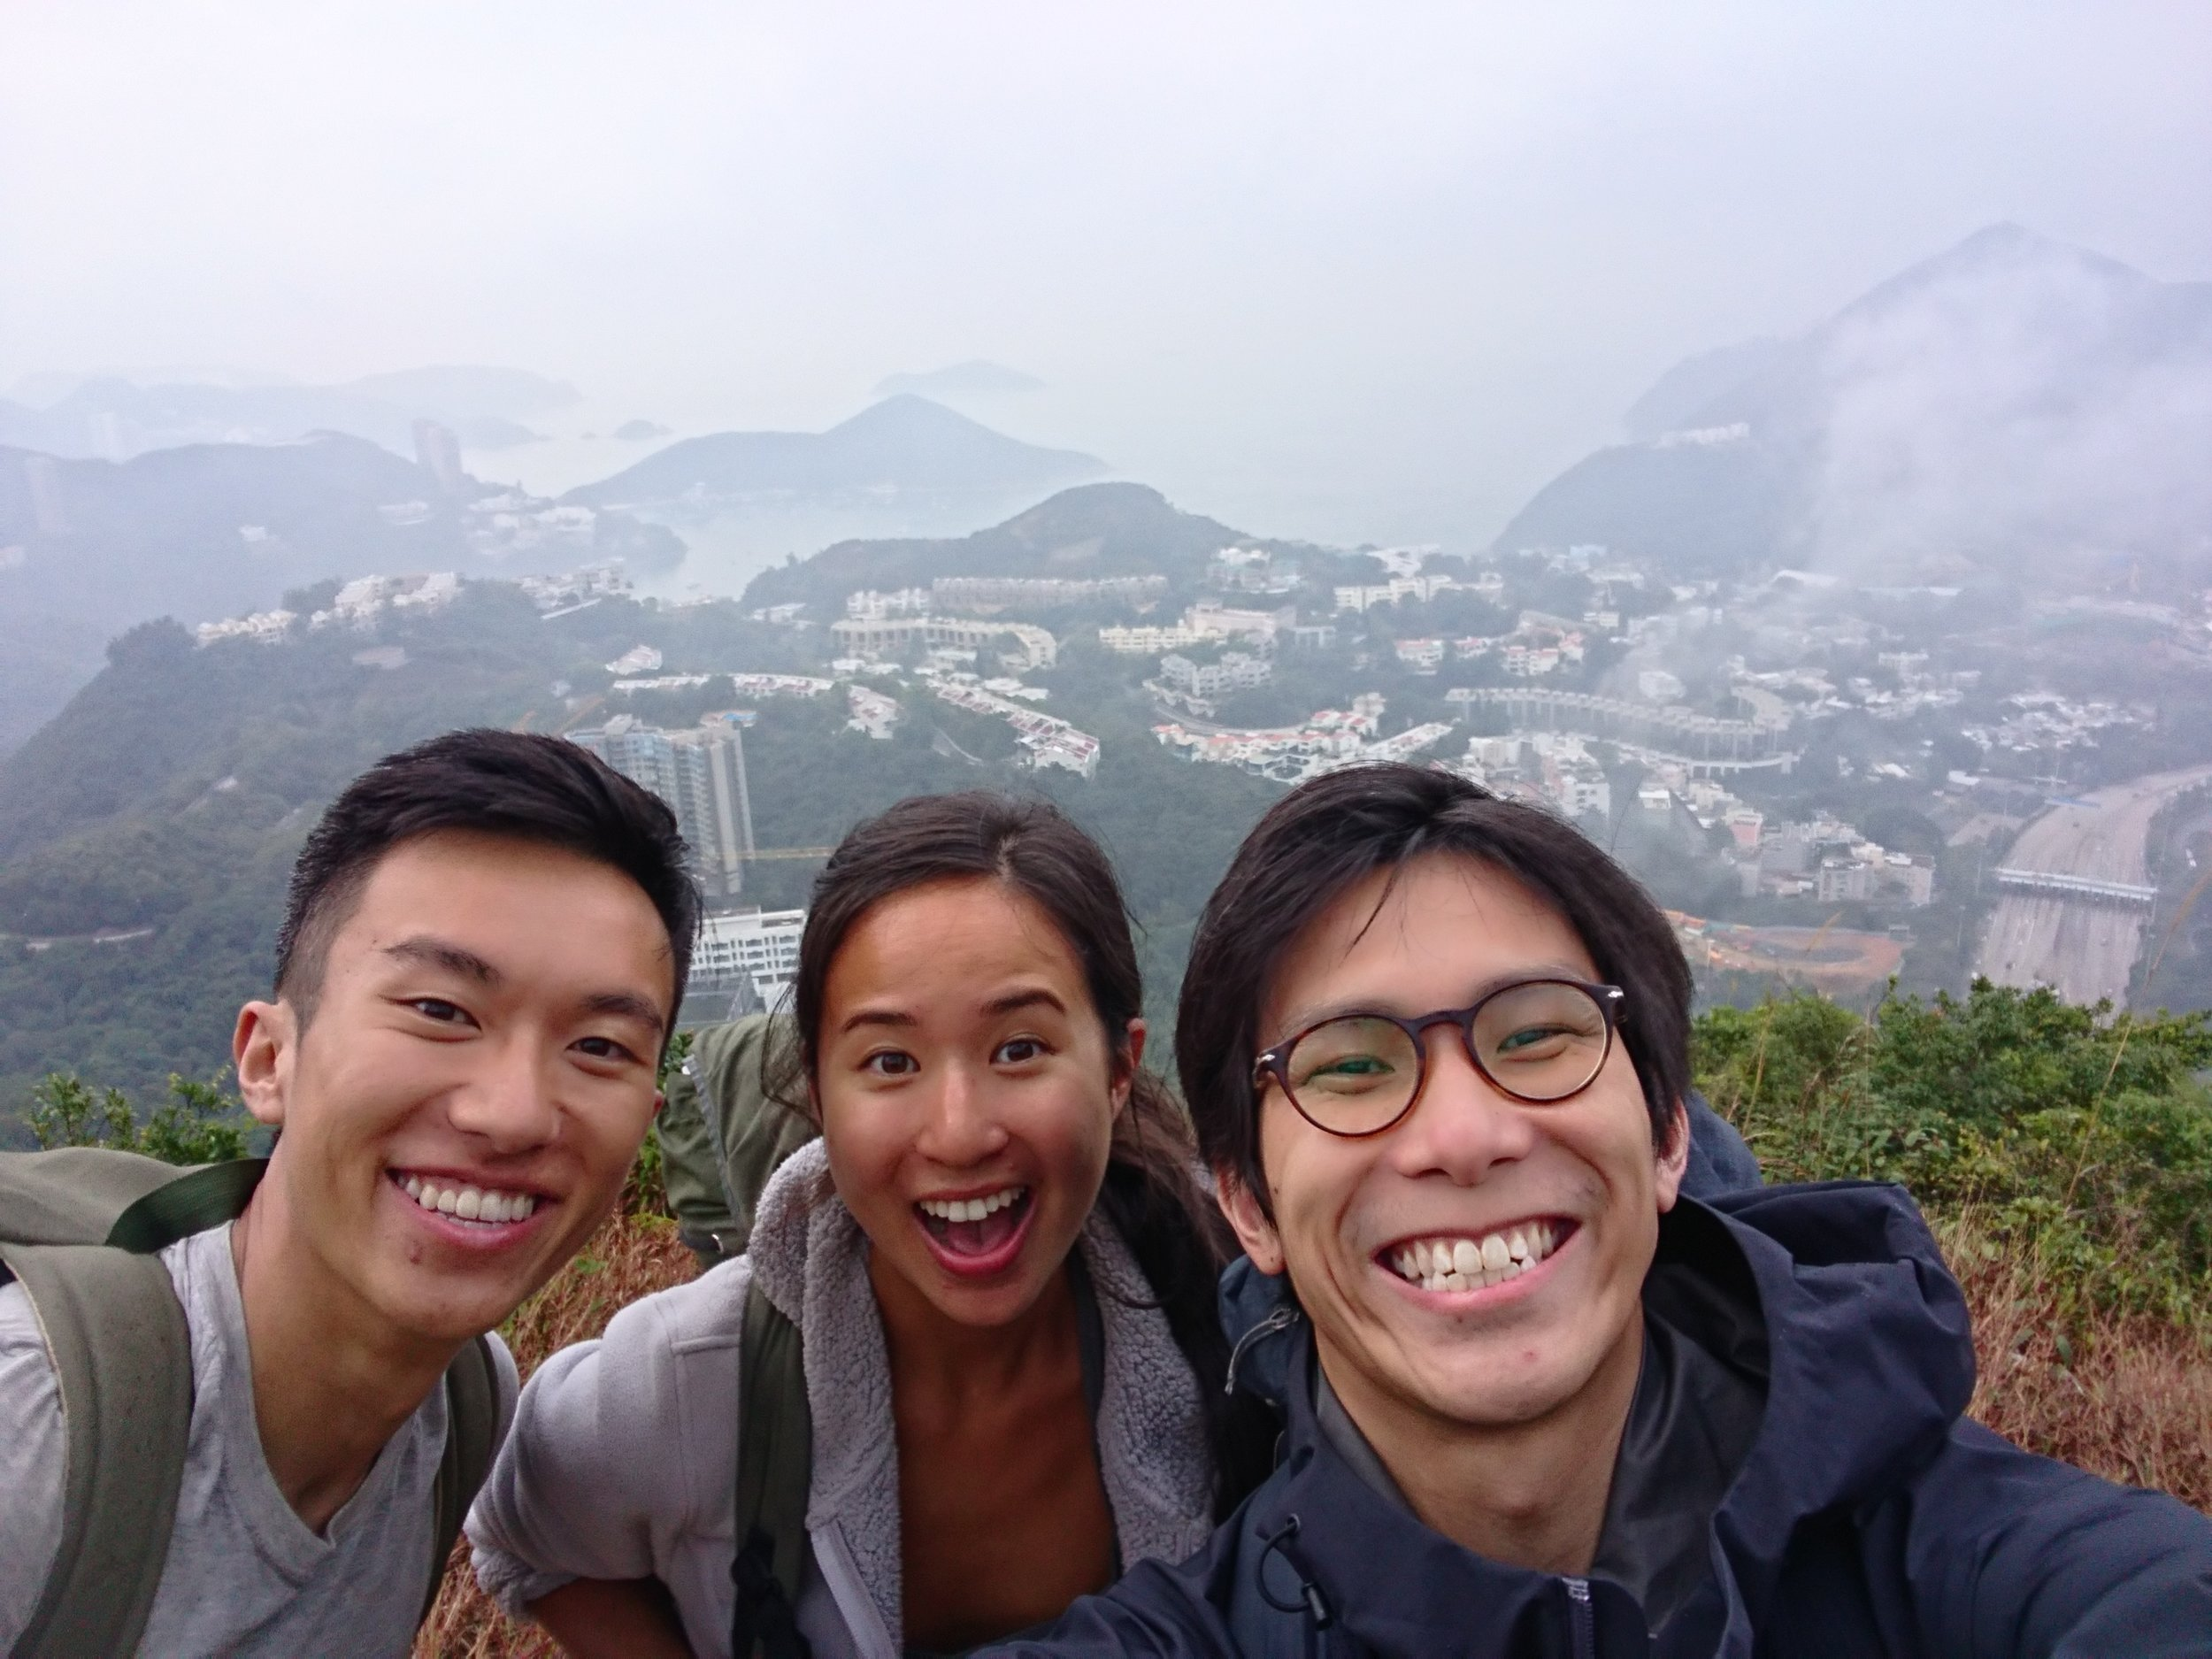 The top of Victoria Peak, Hong Kong with longtime friend Darian (who was with me during my motorcycle crash in Vietnam) and new friend Cheuk-Yin (also a photographer).